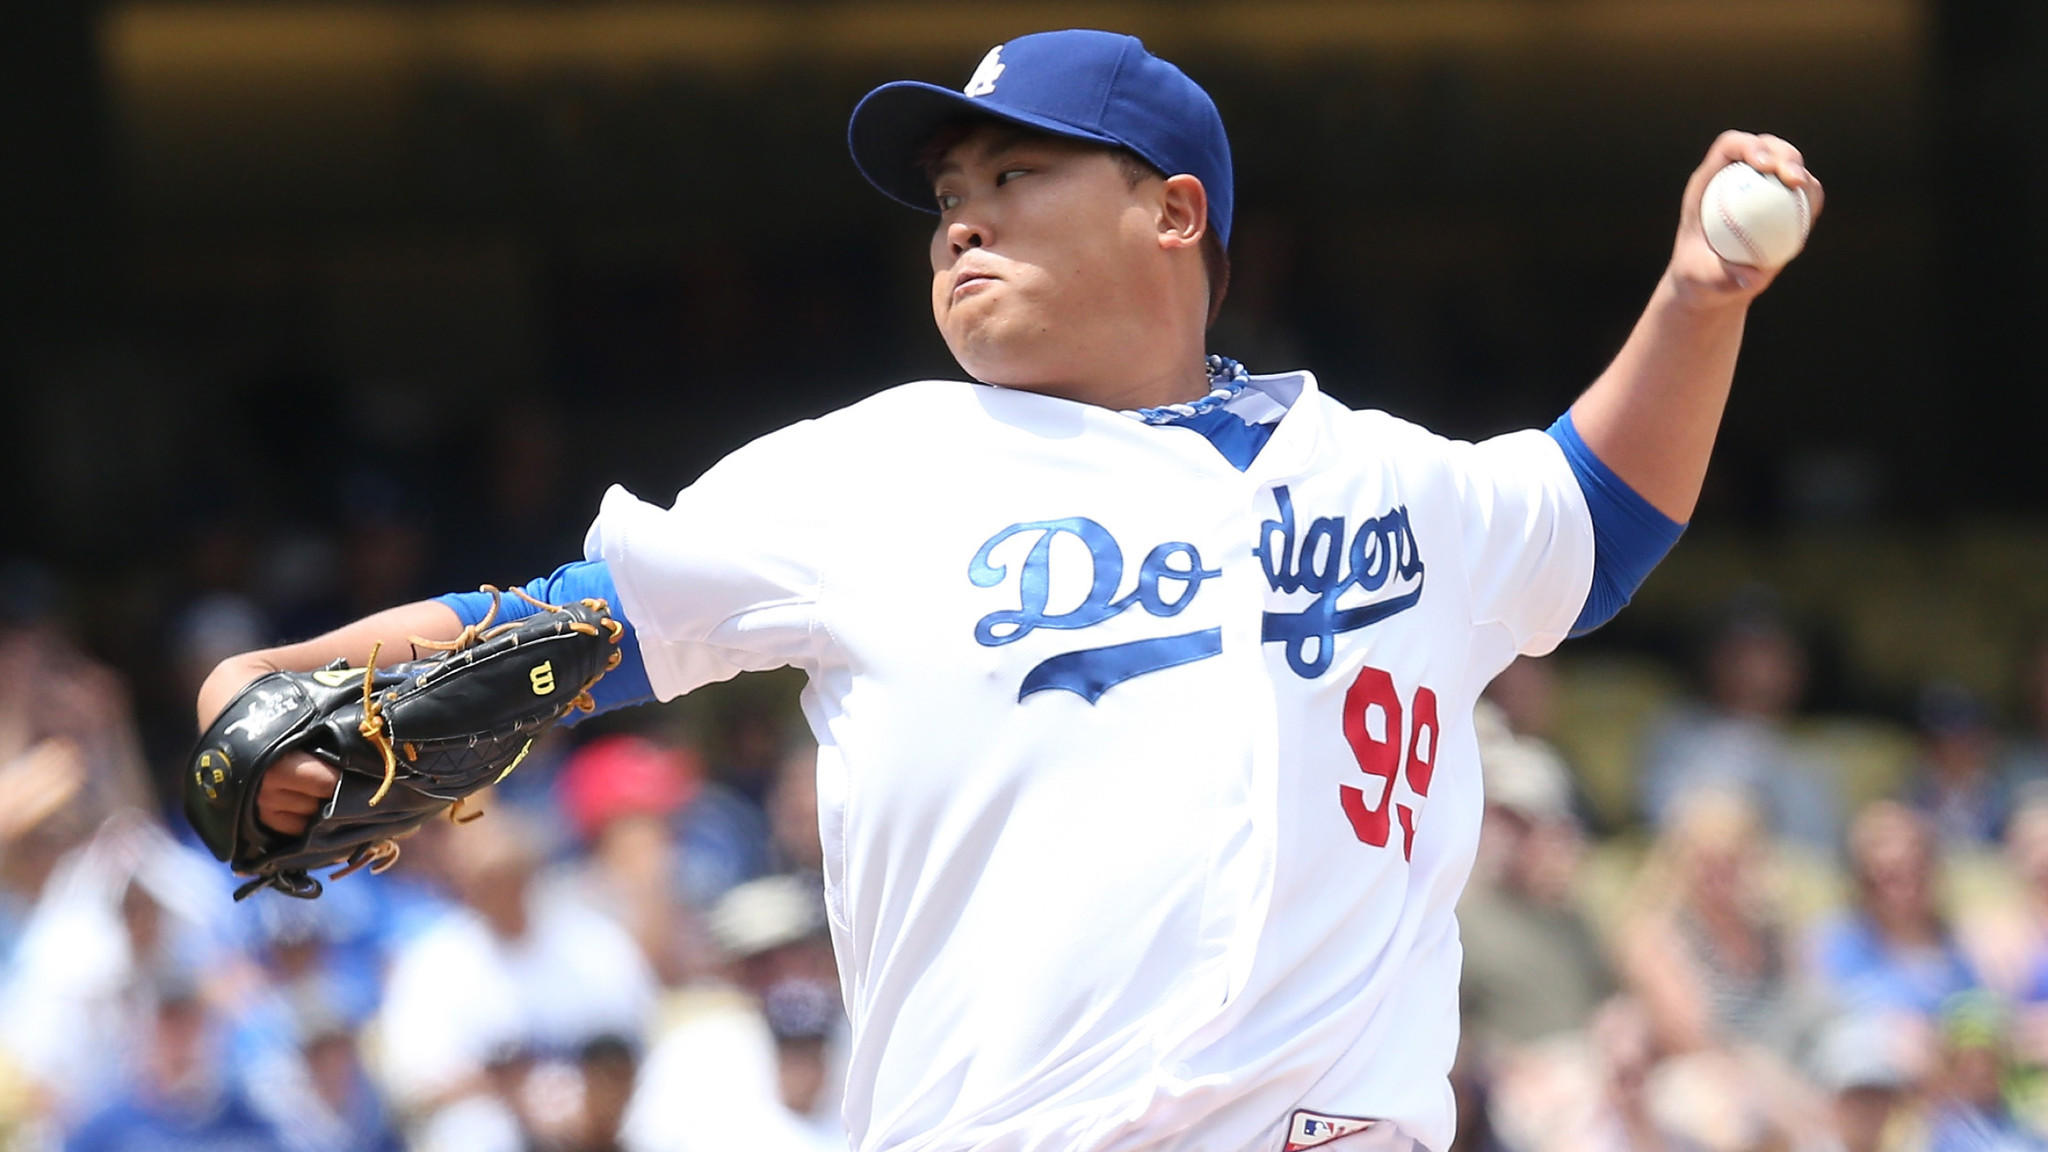 Dodgers starter Hyun-Jin Ryu delivers a pitch during Sunday's 6-1 loss to the Colorado Rockies.